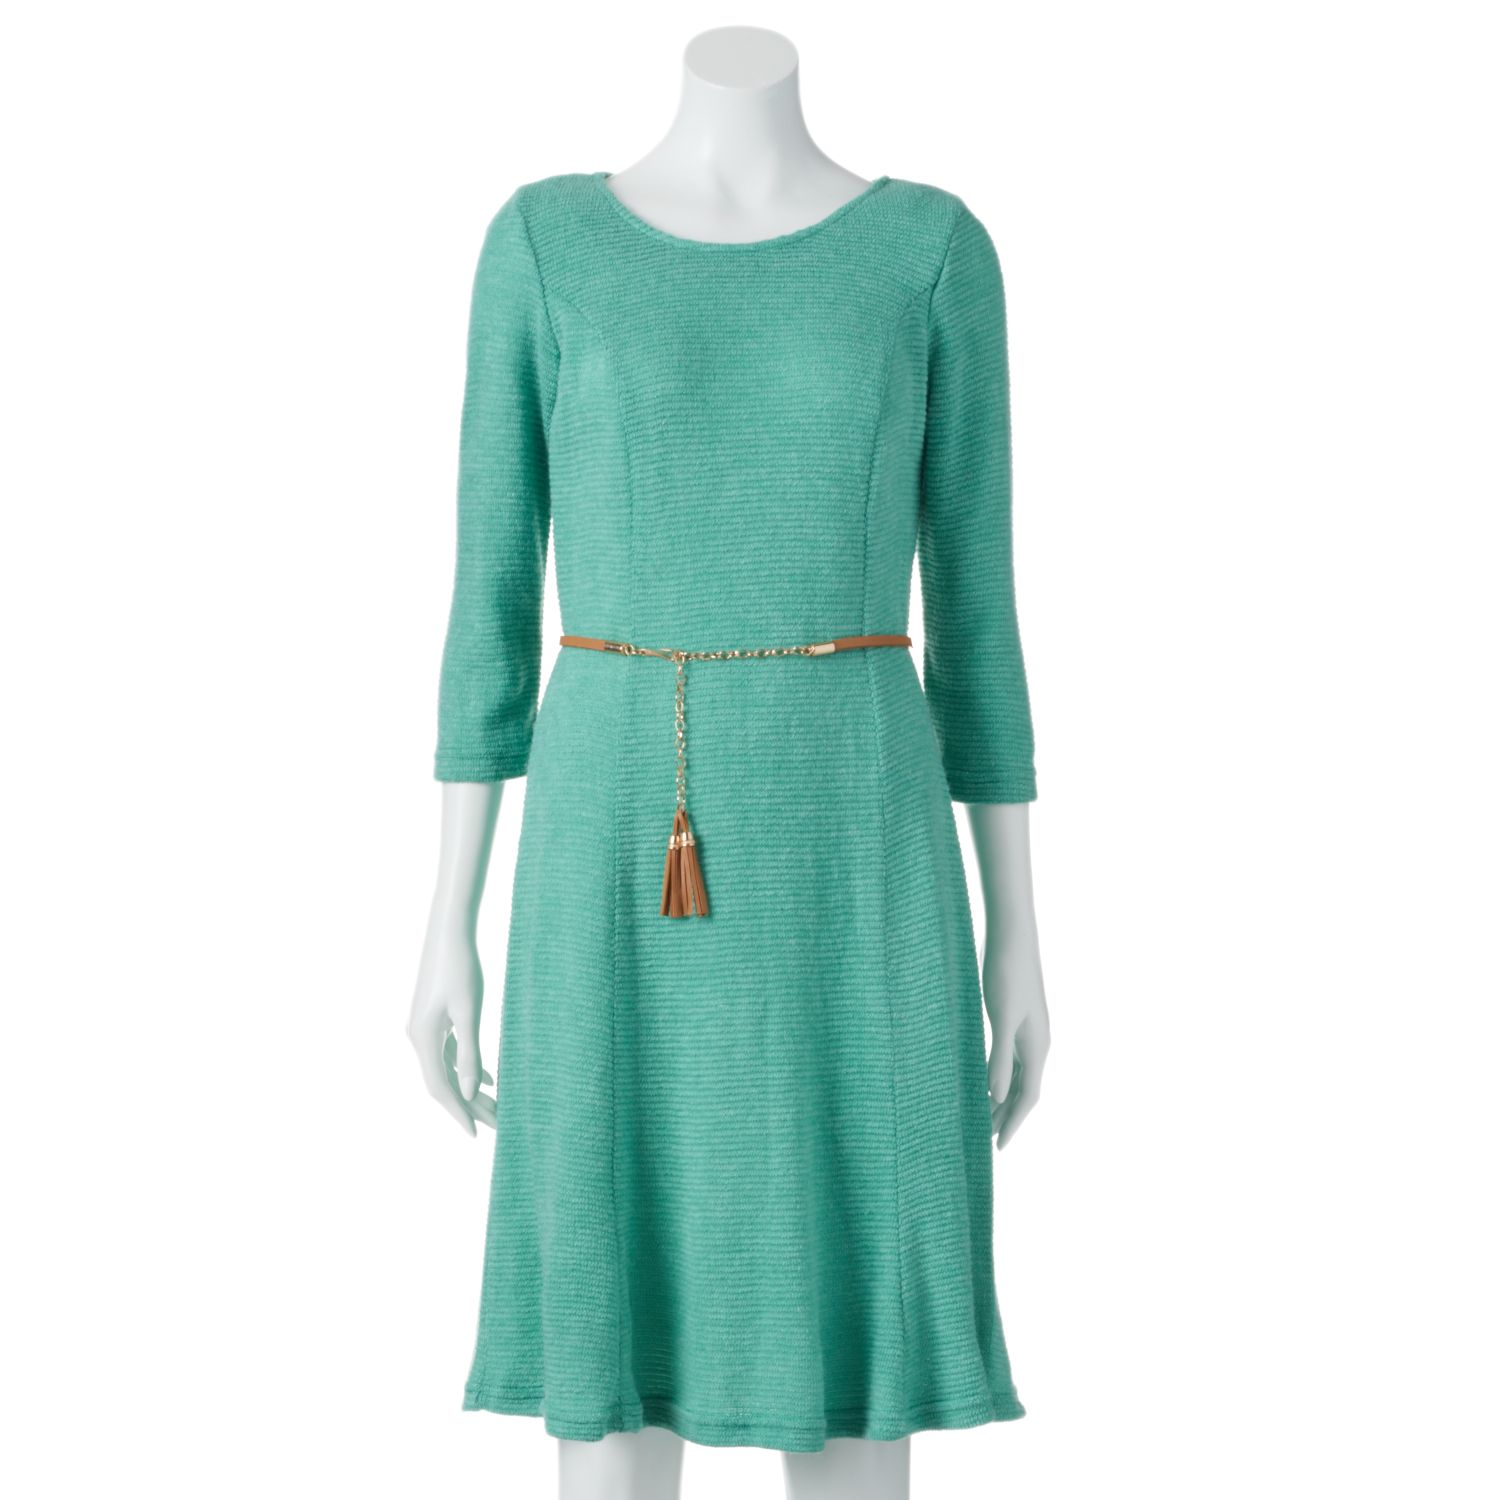 Sharagano Ribbed Fit & Flare Sweaterdress - Womens